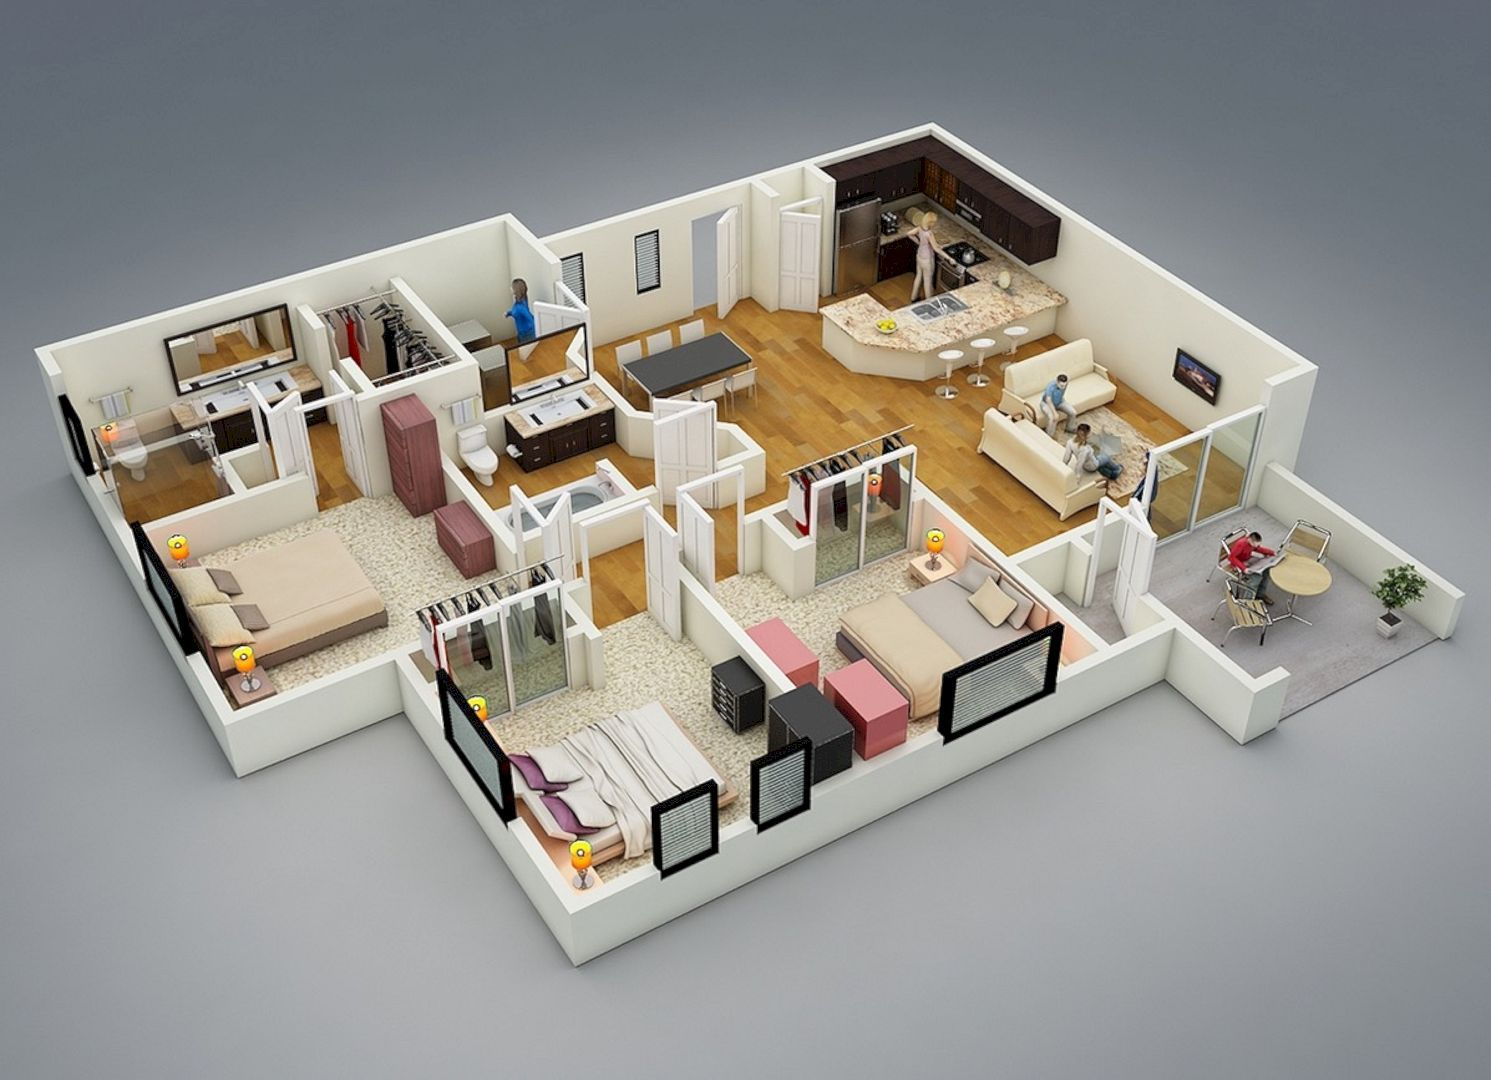 Why Do We Need 3d House Plan Before Starting The Project 3d House Plans House Plans With Photos Home Design Plans